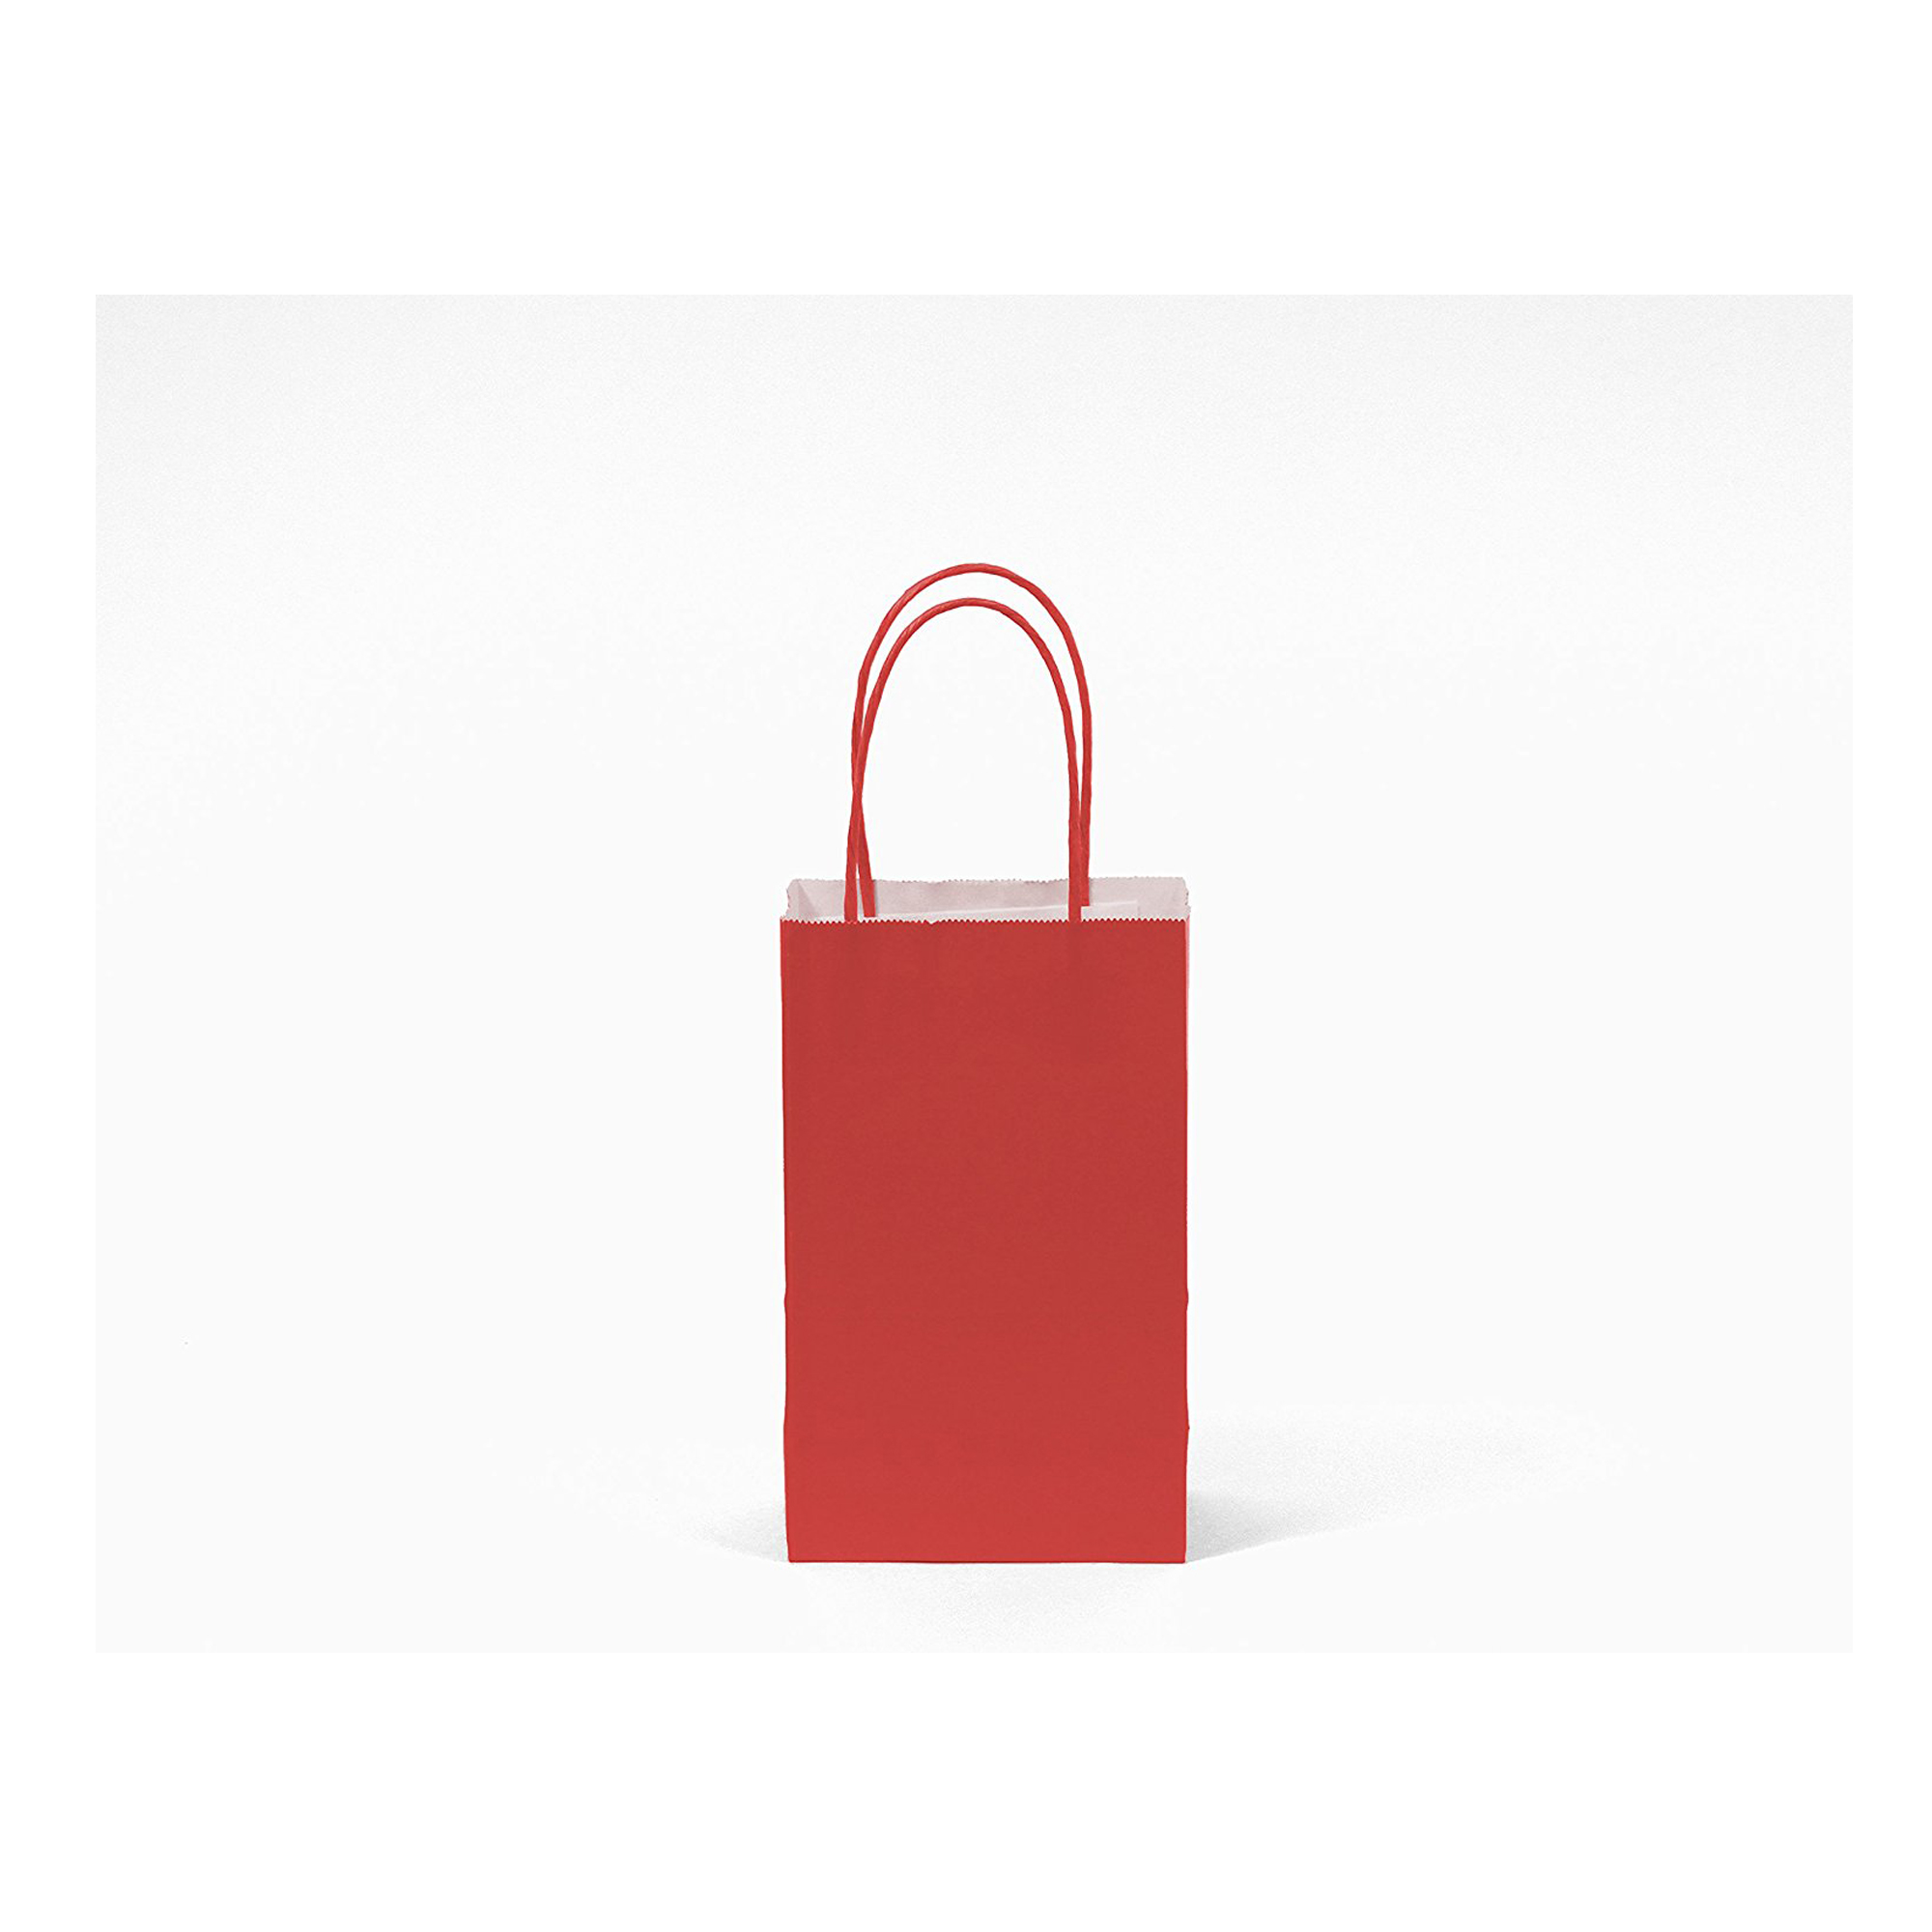 60 Pack Small Red Kraft Bag, Gift bag, Biodegradable, FOOD SAFE INK & PAPER(STURDY & THICKER), Gift Expressions